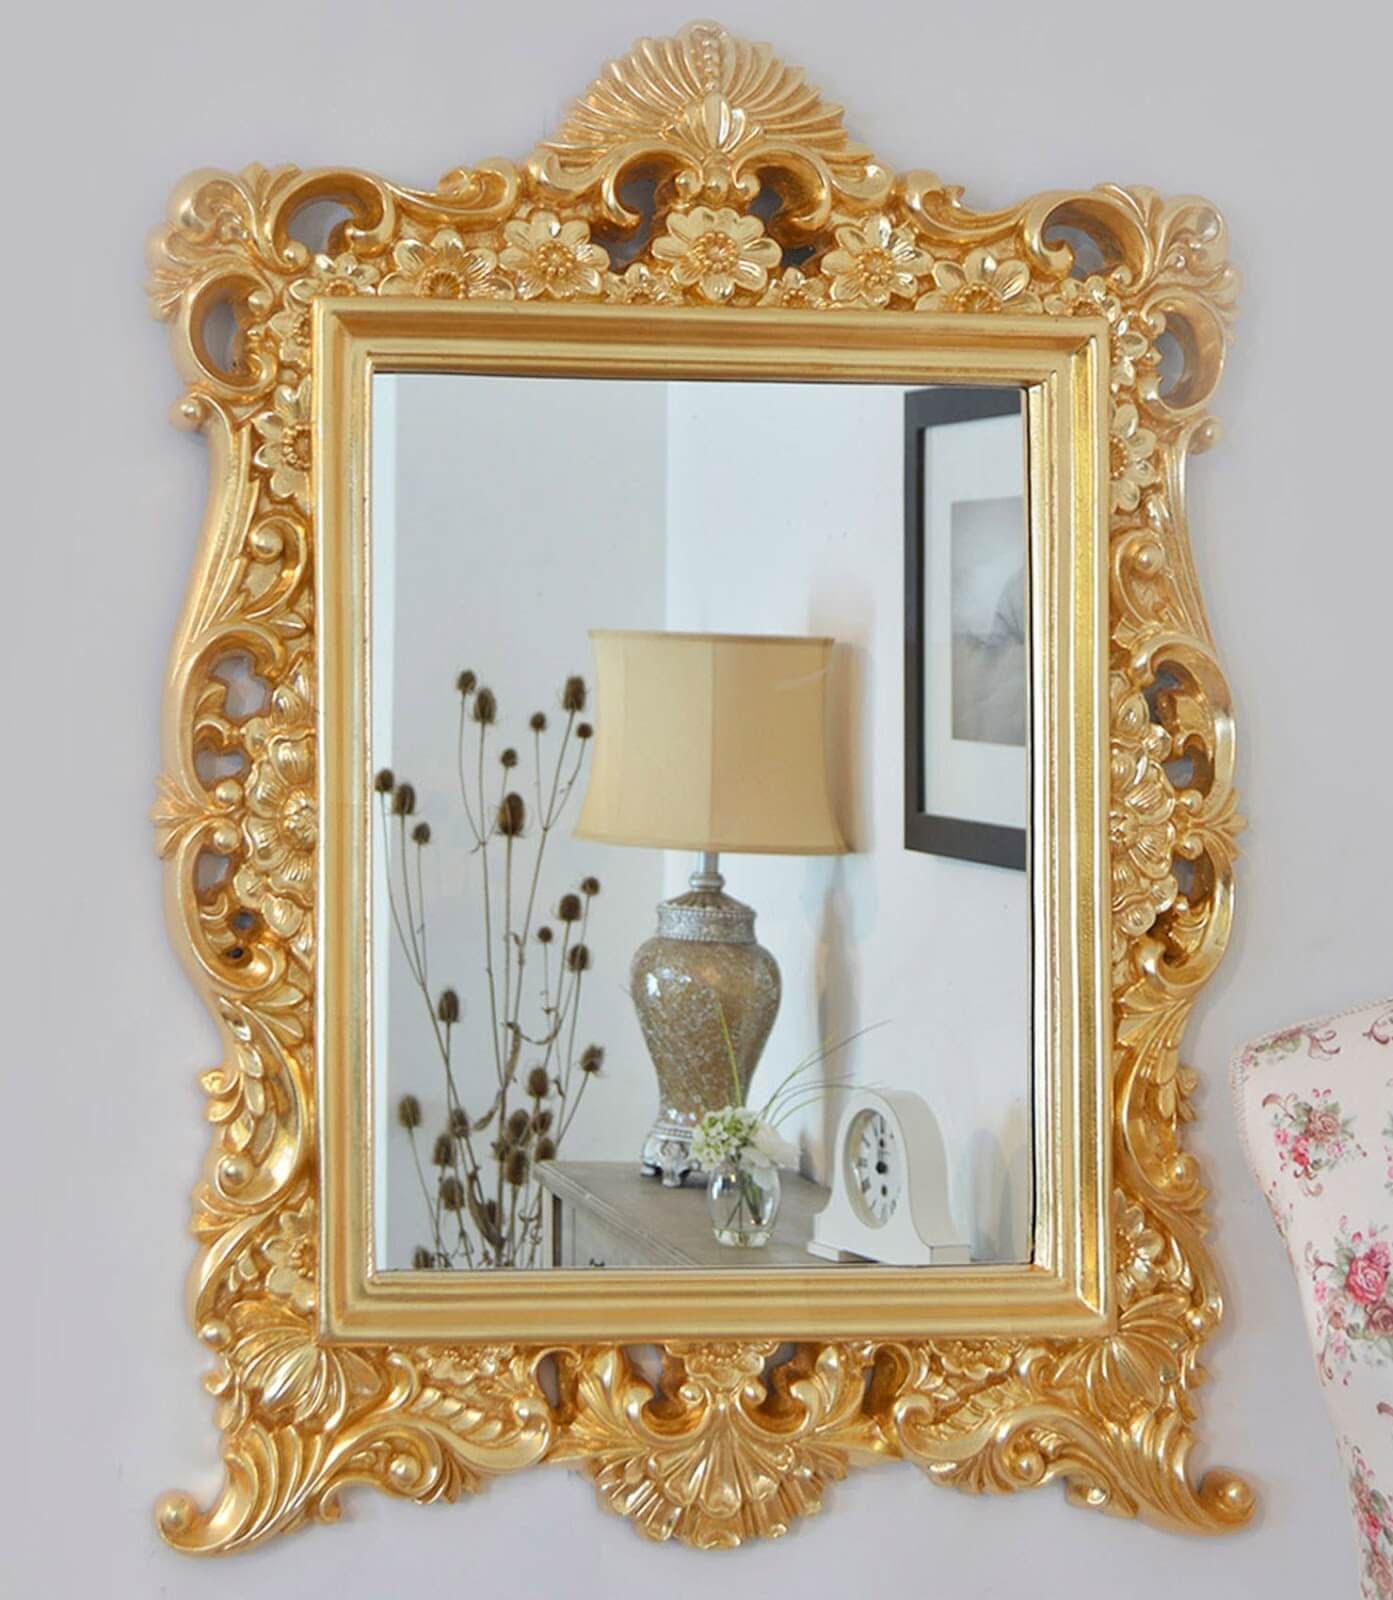 Decorative ornate mirrors wall vs floor which one better awesome gold decorative ornate wall hanging mirror amipublicfo Images